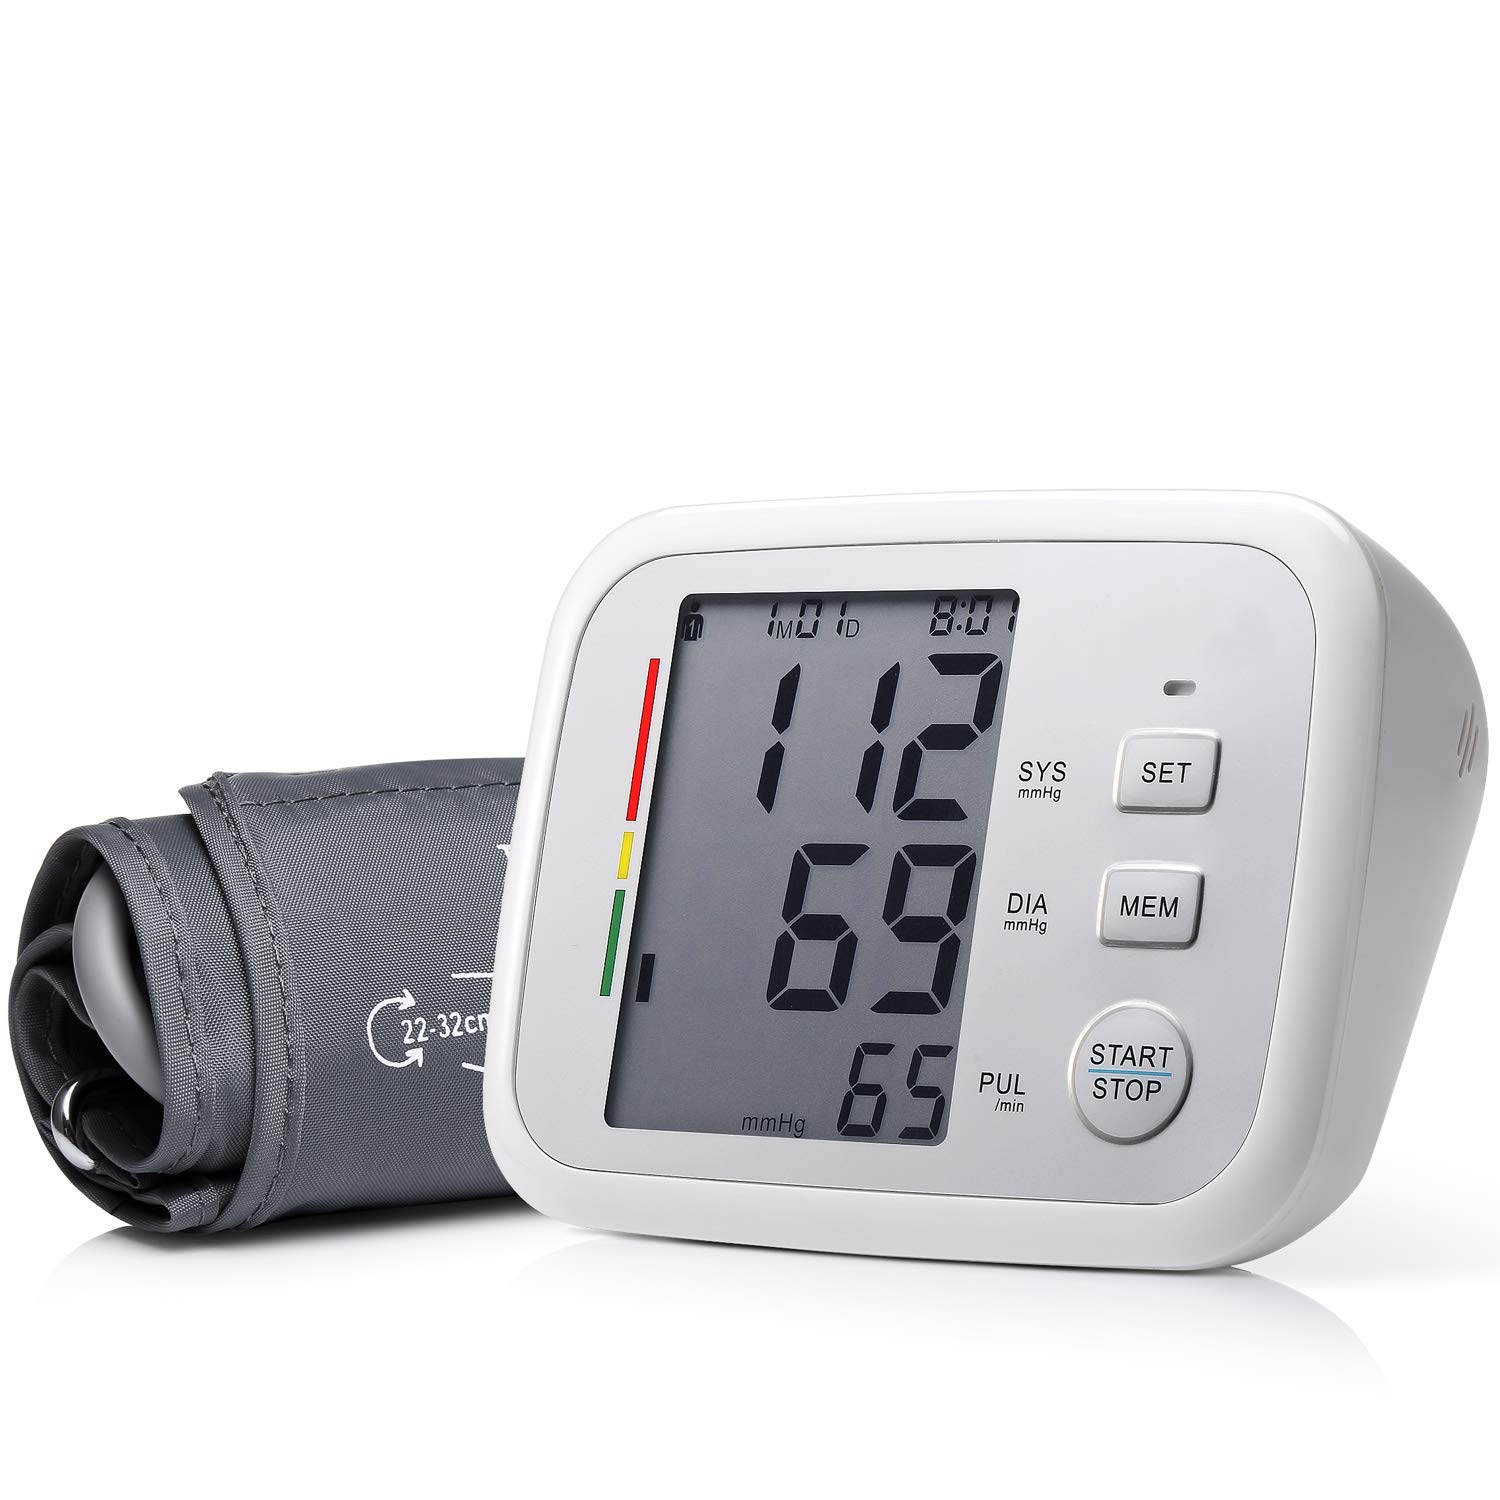 Prymax Blood Pressure Monitor Upper Arm Large Cuff Fits Arms 8.5-17 Inches Portable Automatic Digital Monitor, FDA Approved, at Home, Irregular Heart Beat Detection, Large Screen, 2 User*90 Reading by PRYMAX (Image #1)